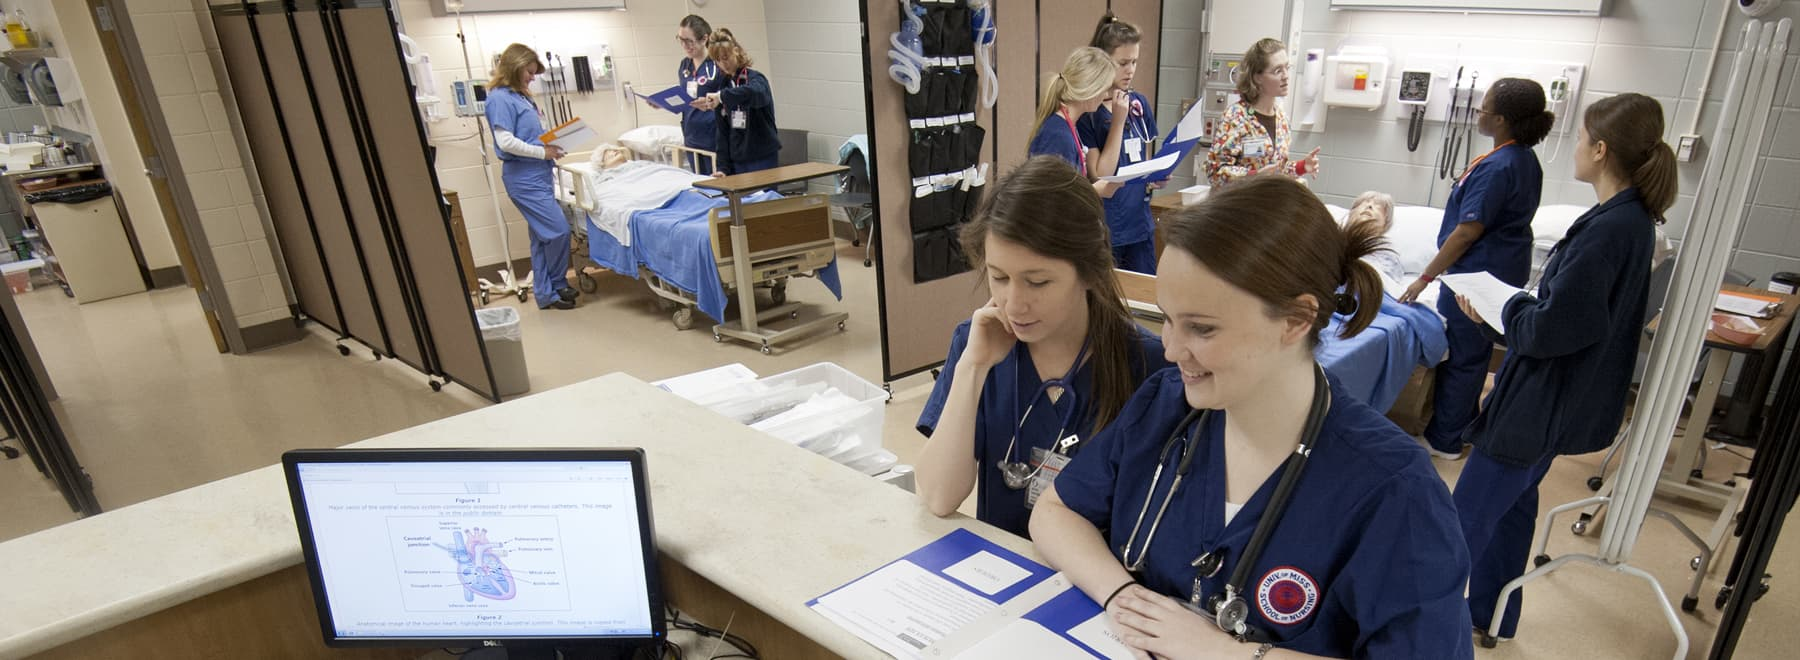 Two students look over a case while others communicate with faculty at the simulated bedside.